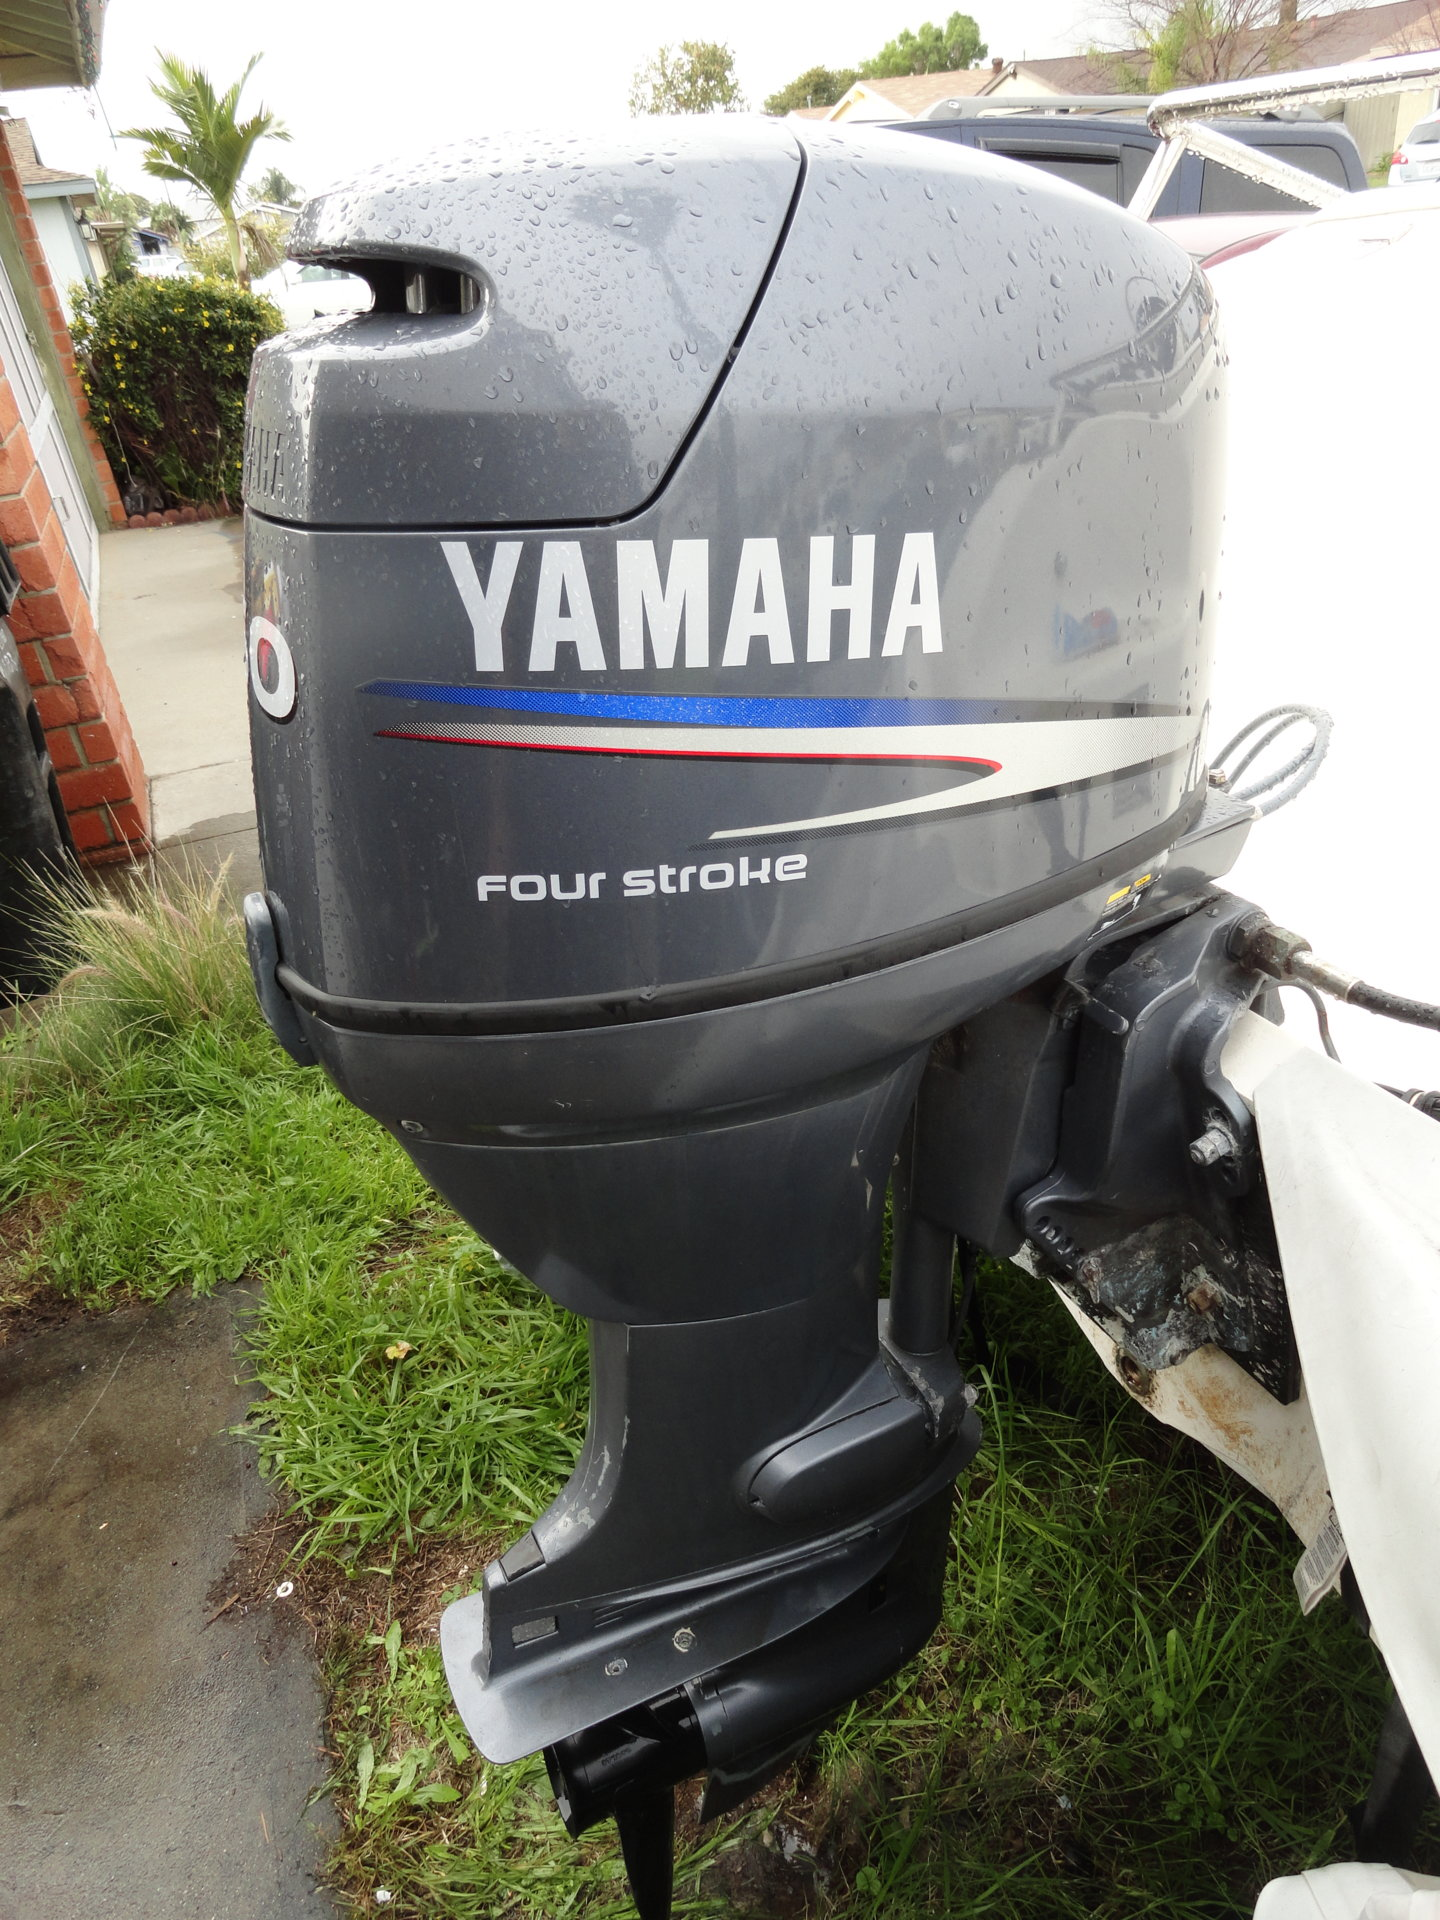 Yamaha f50 outboard fourstroke 50 hp 20 shaft bloodydecks for Yamaha outboard service san diego